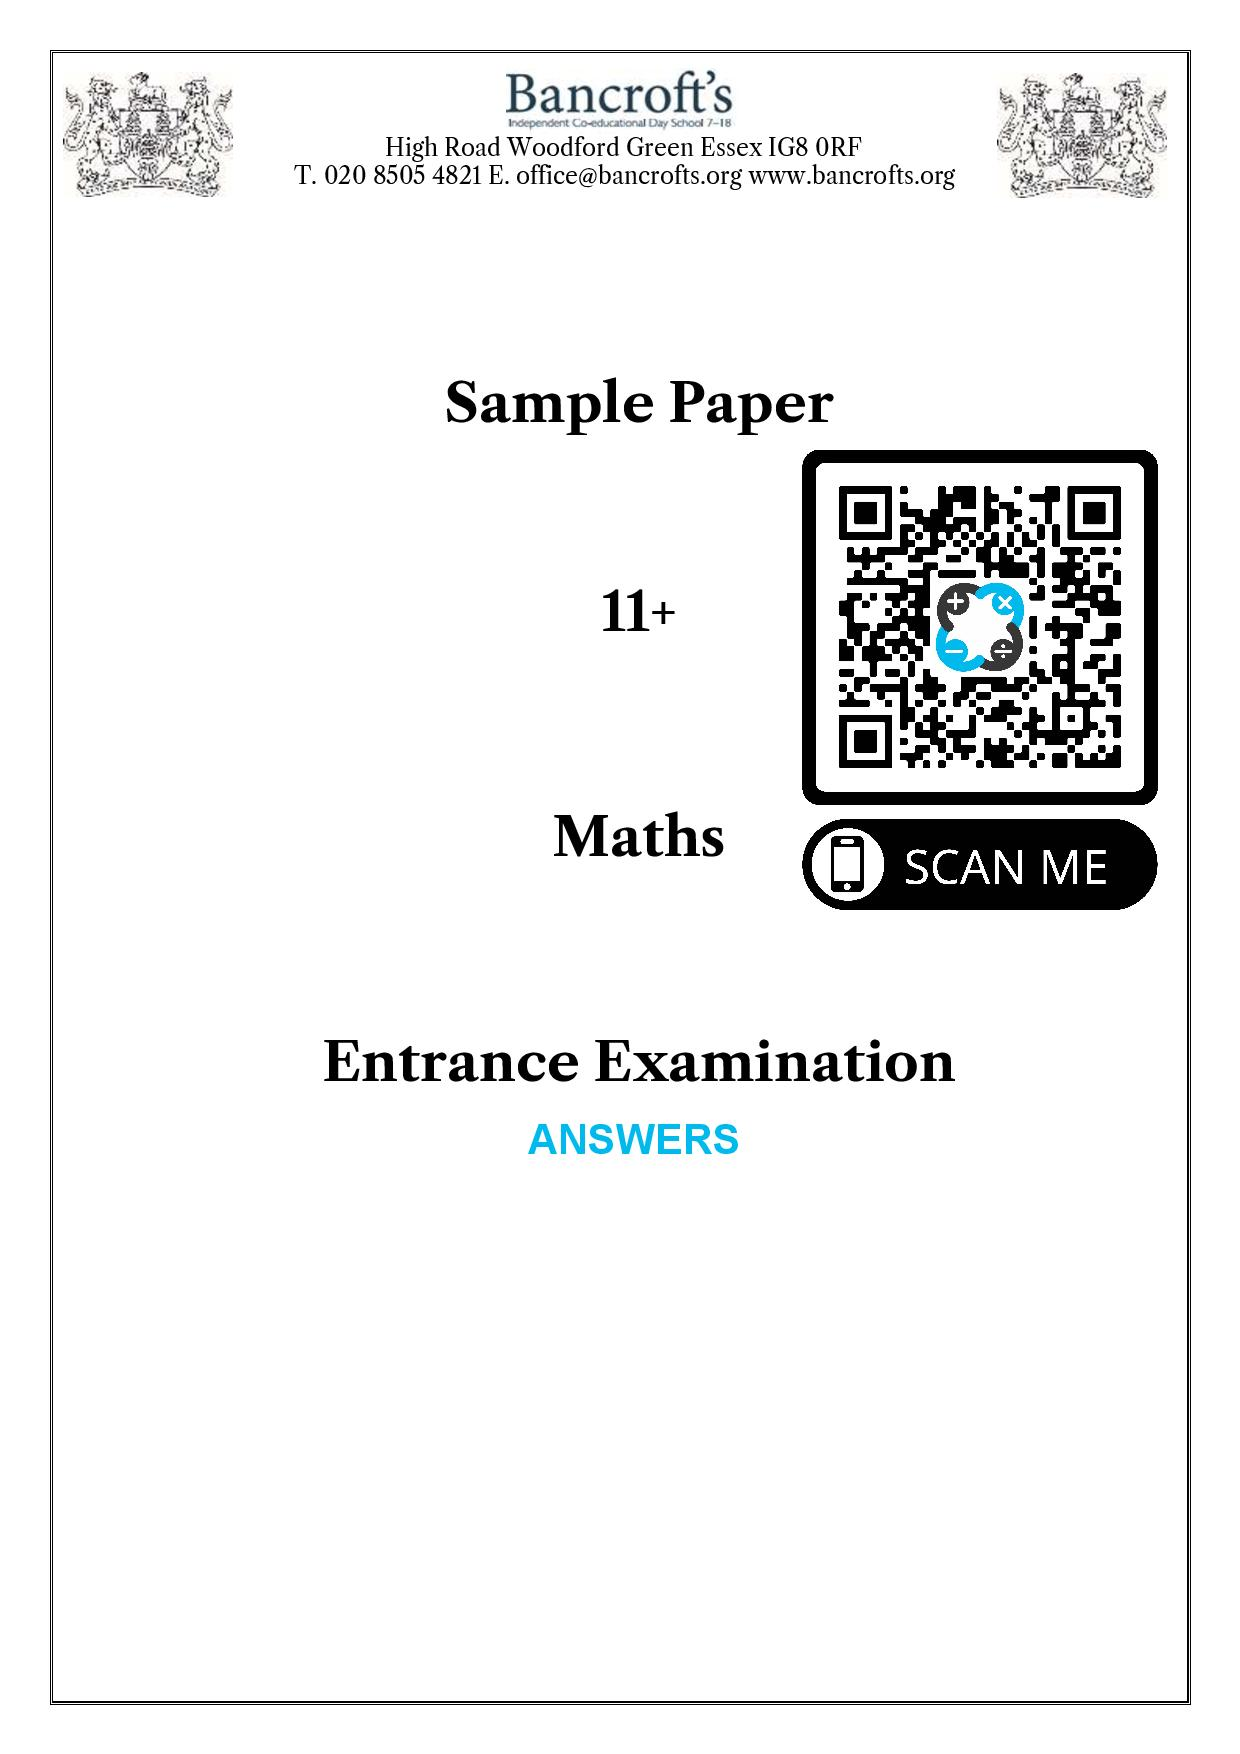 Bancrofts School Sample 11 Plus Maths Paper 2018 Answer Paper 1 page 001